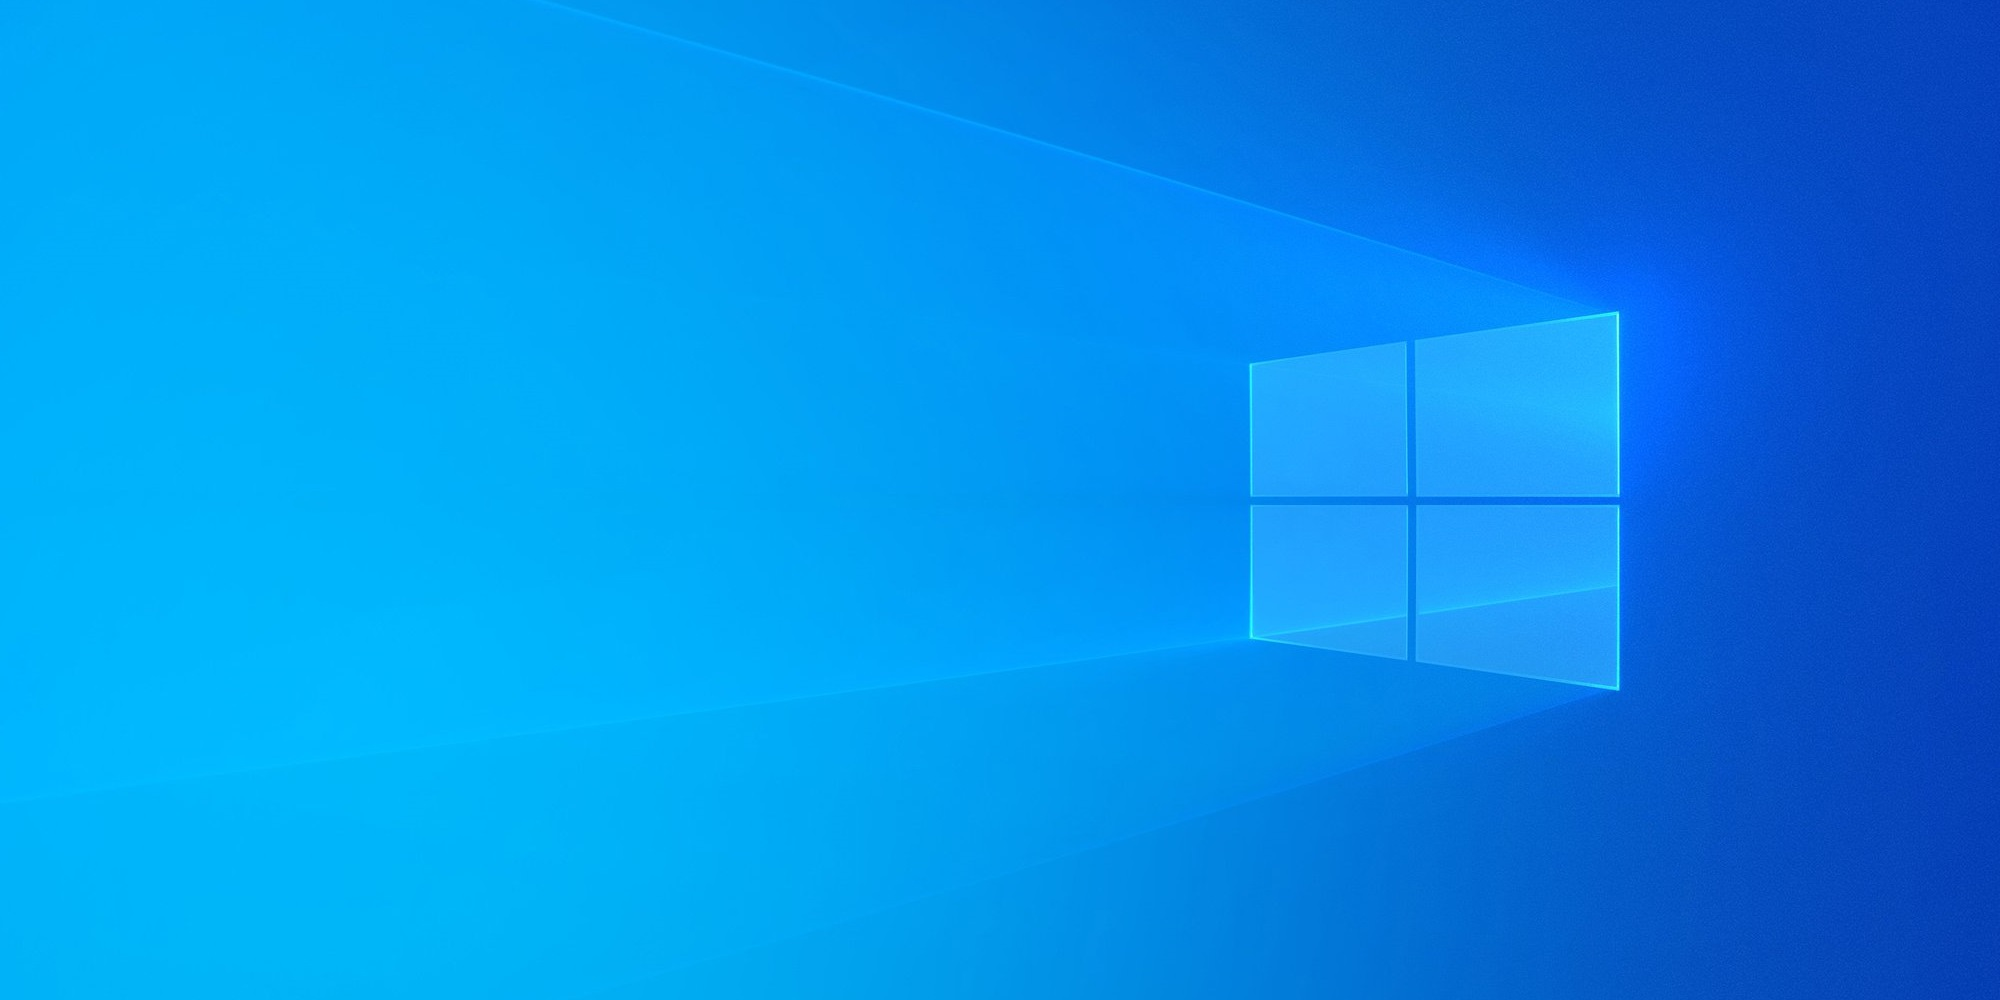 Microsoft releases new Windows 10 preview with File Explorer, Start, keyboard, Notepad, and setup improvements